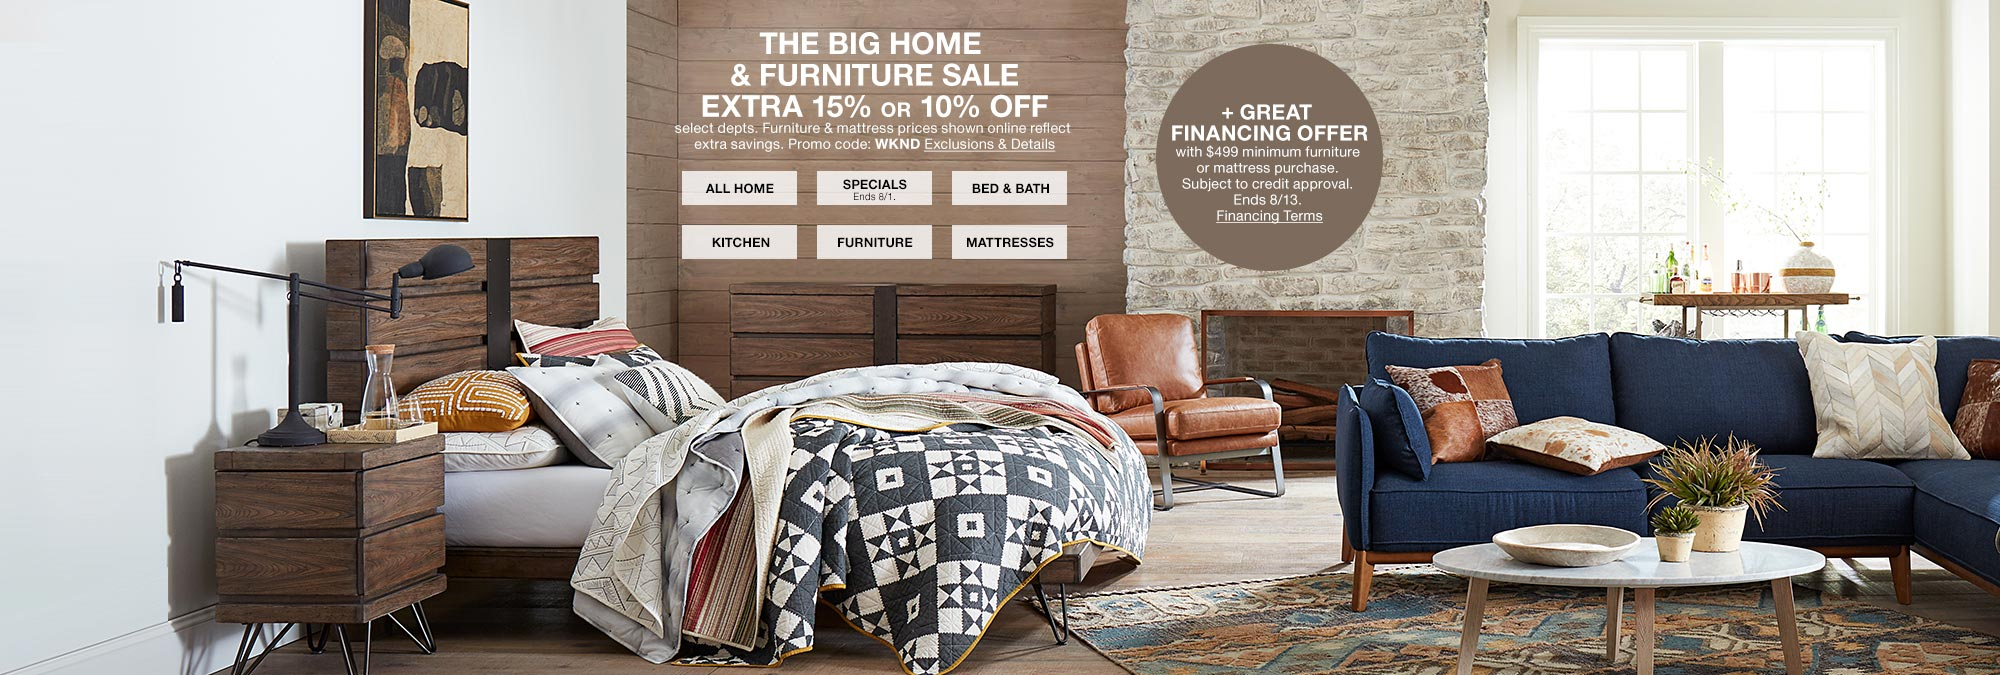 the big home and furniture sale extra 15 percent or 10 percent off. select departments. furniture and mattress prices shown online reflect extra savings. promo code. wknd plus great financing offer with $499 minimum furniture or mattress purchase. subject to credit approval. ends august 13th.